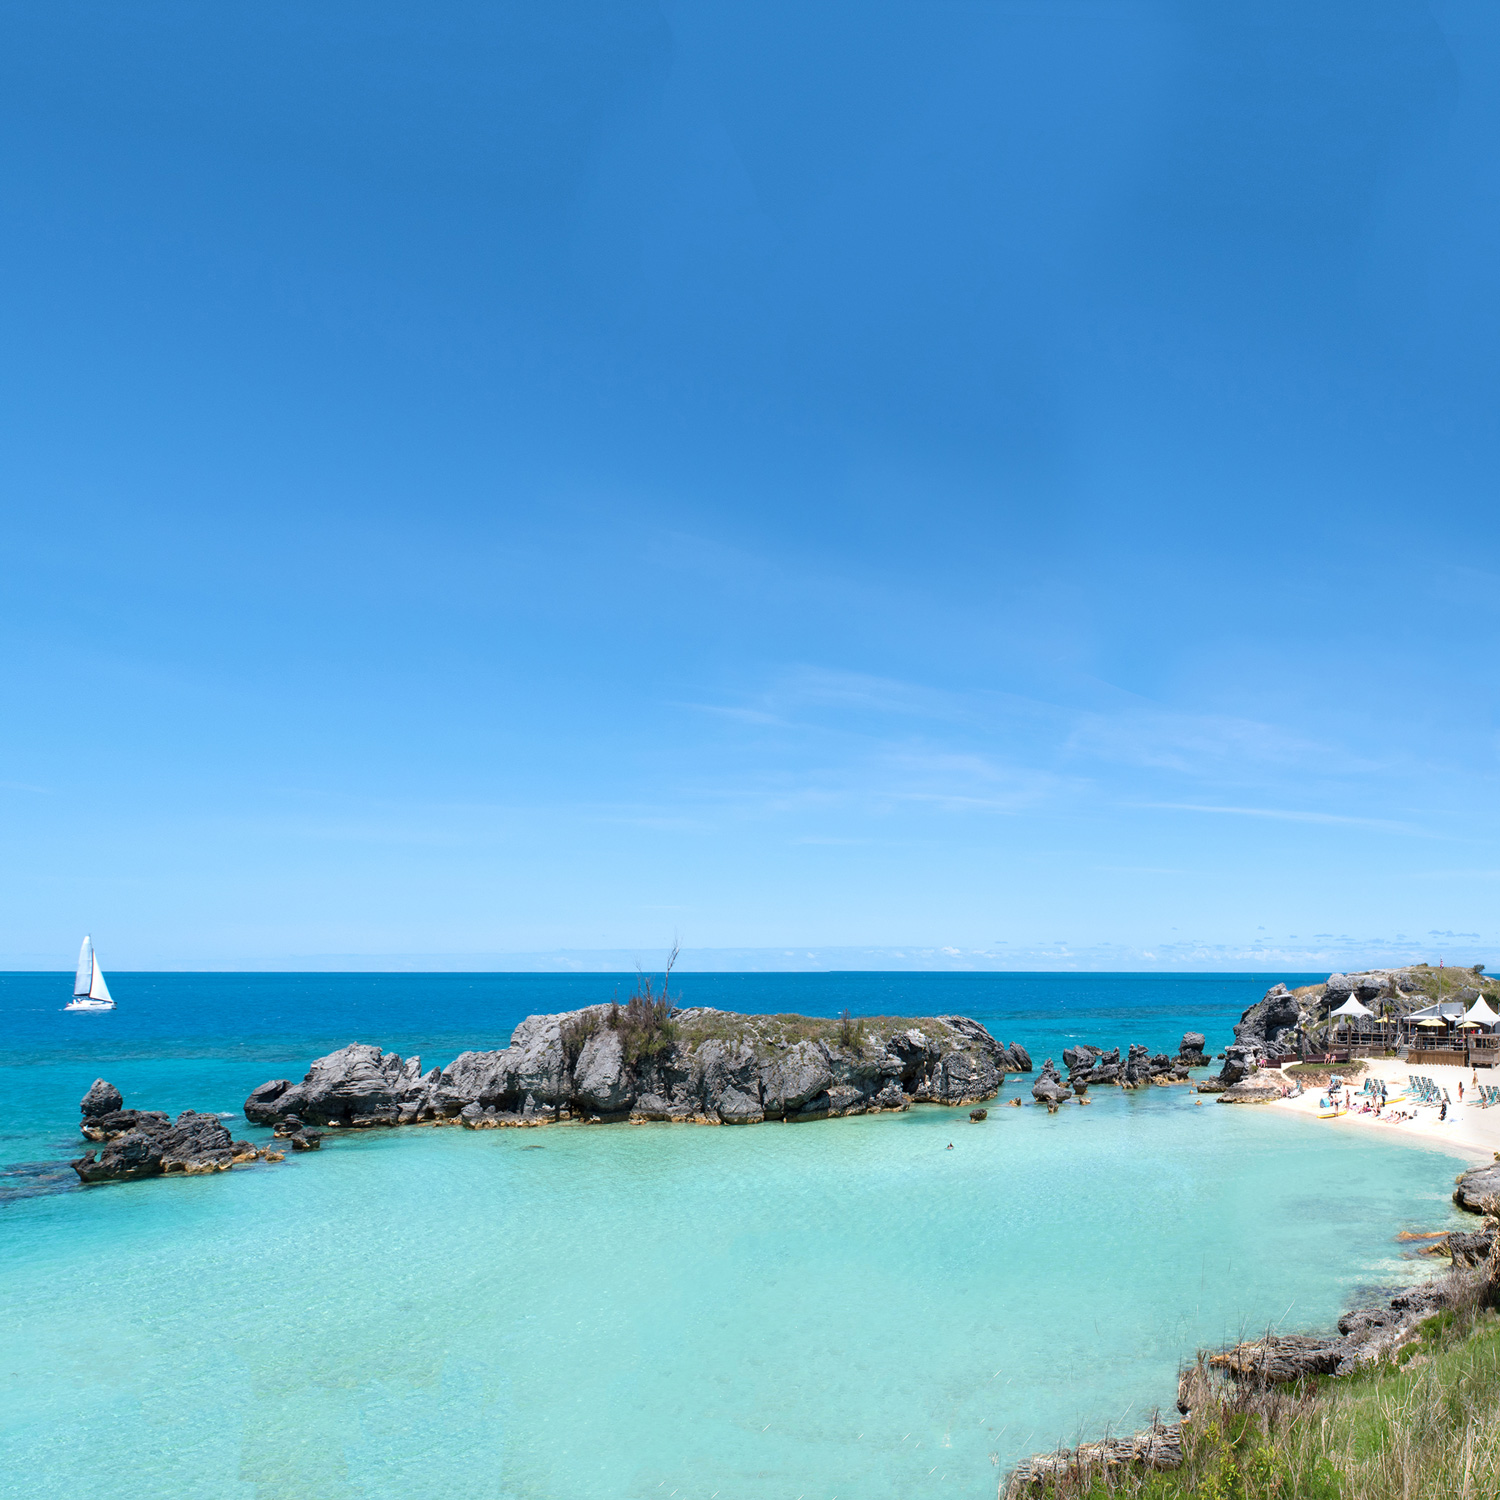 What To Do on Your First Trip to Bermuda